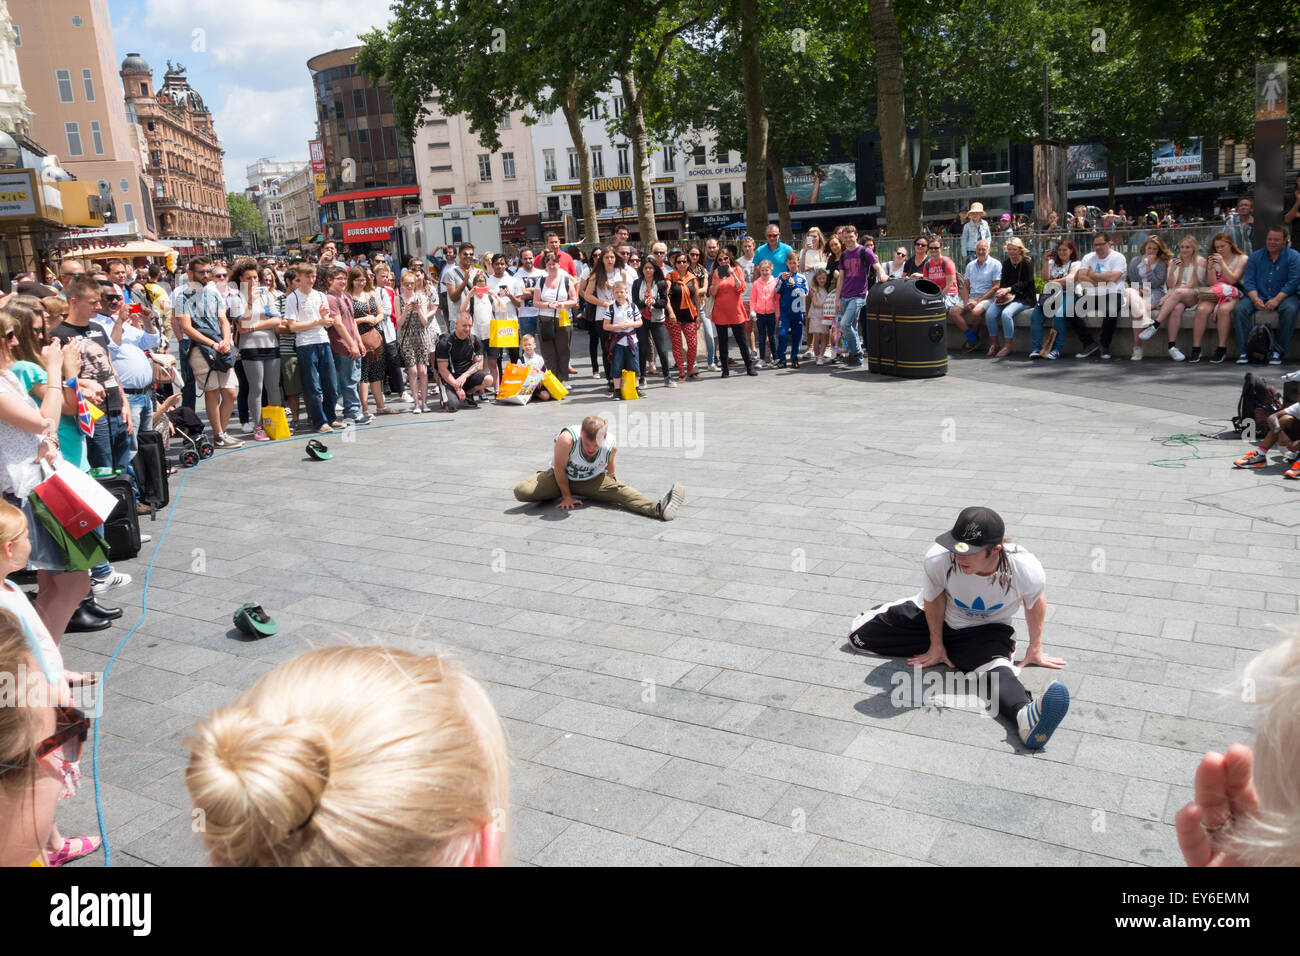 Street entertainers dancing to an audience in Leicester Square, London England UK - Stock Image